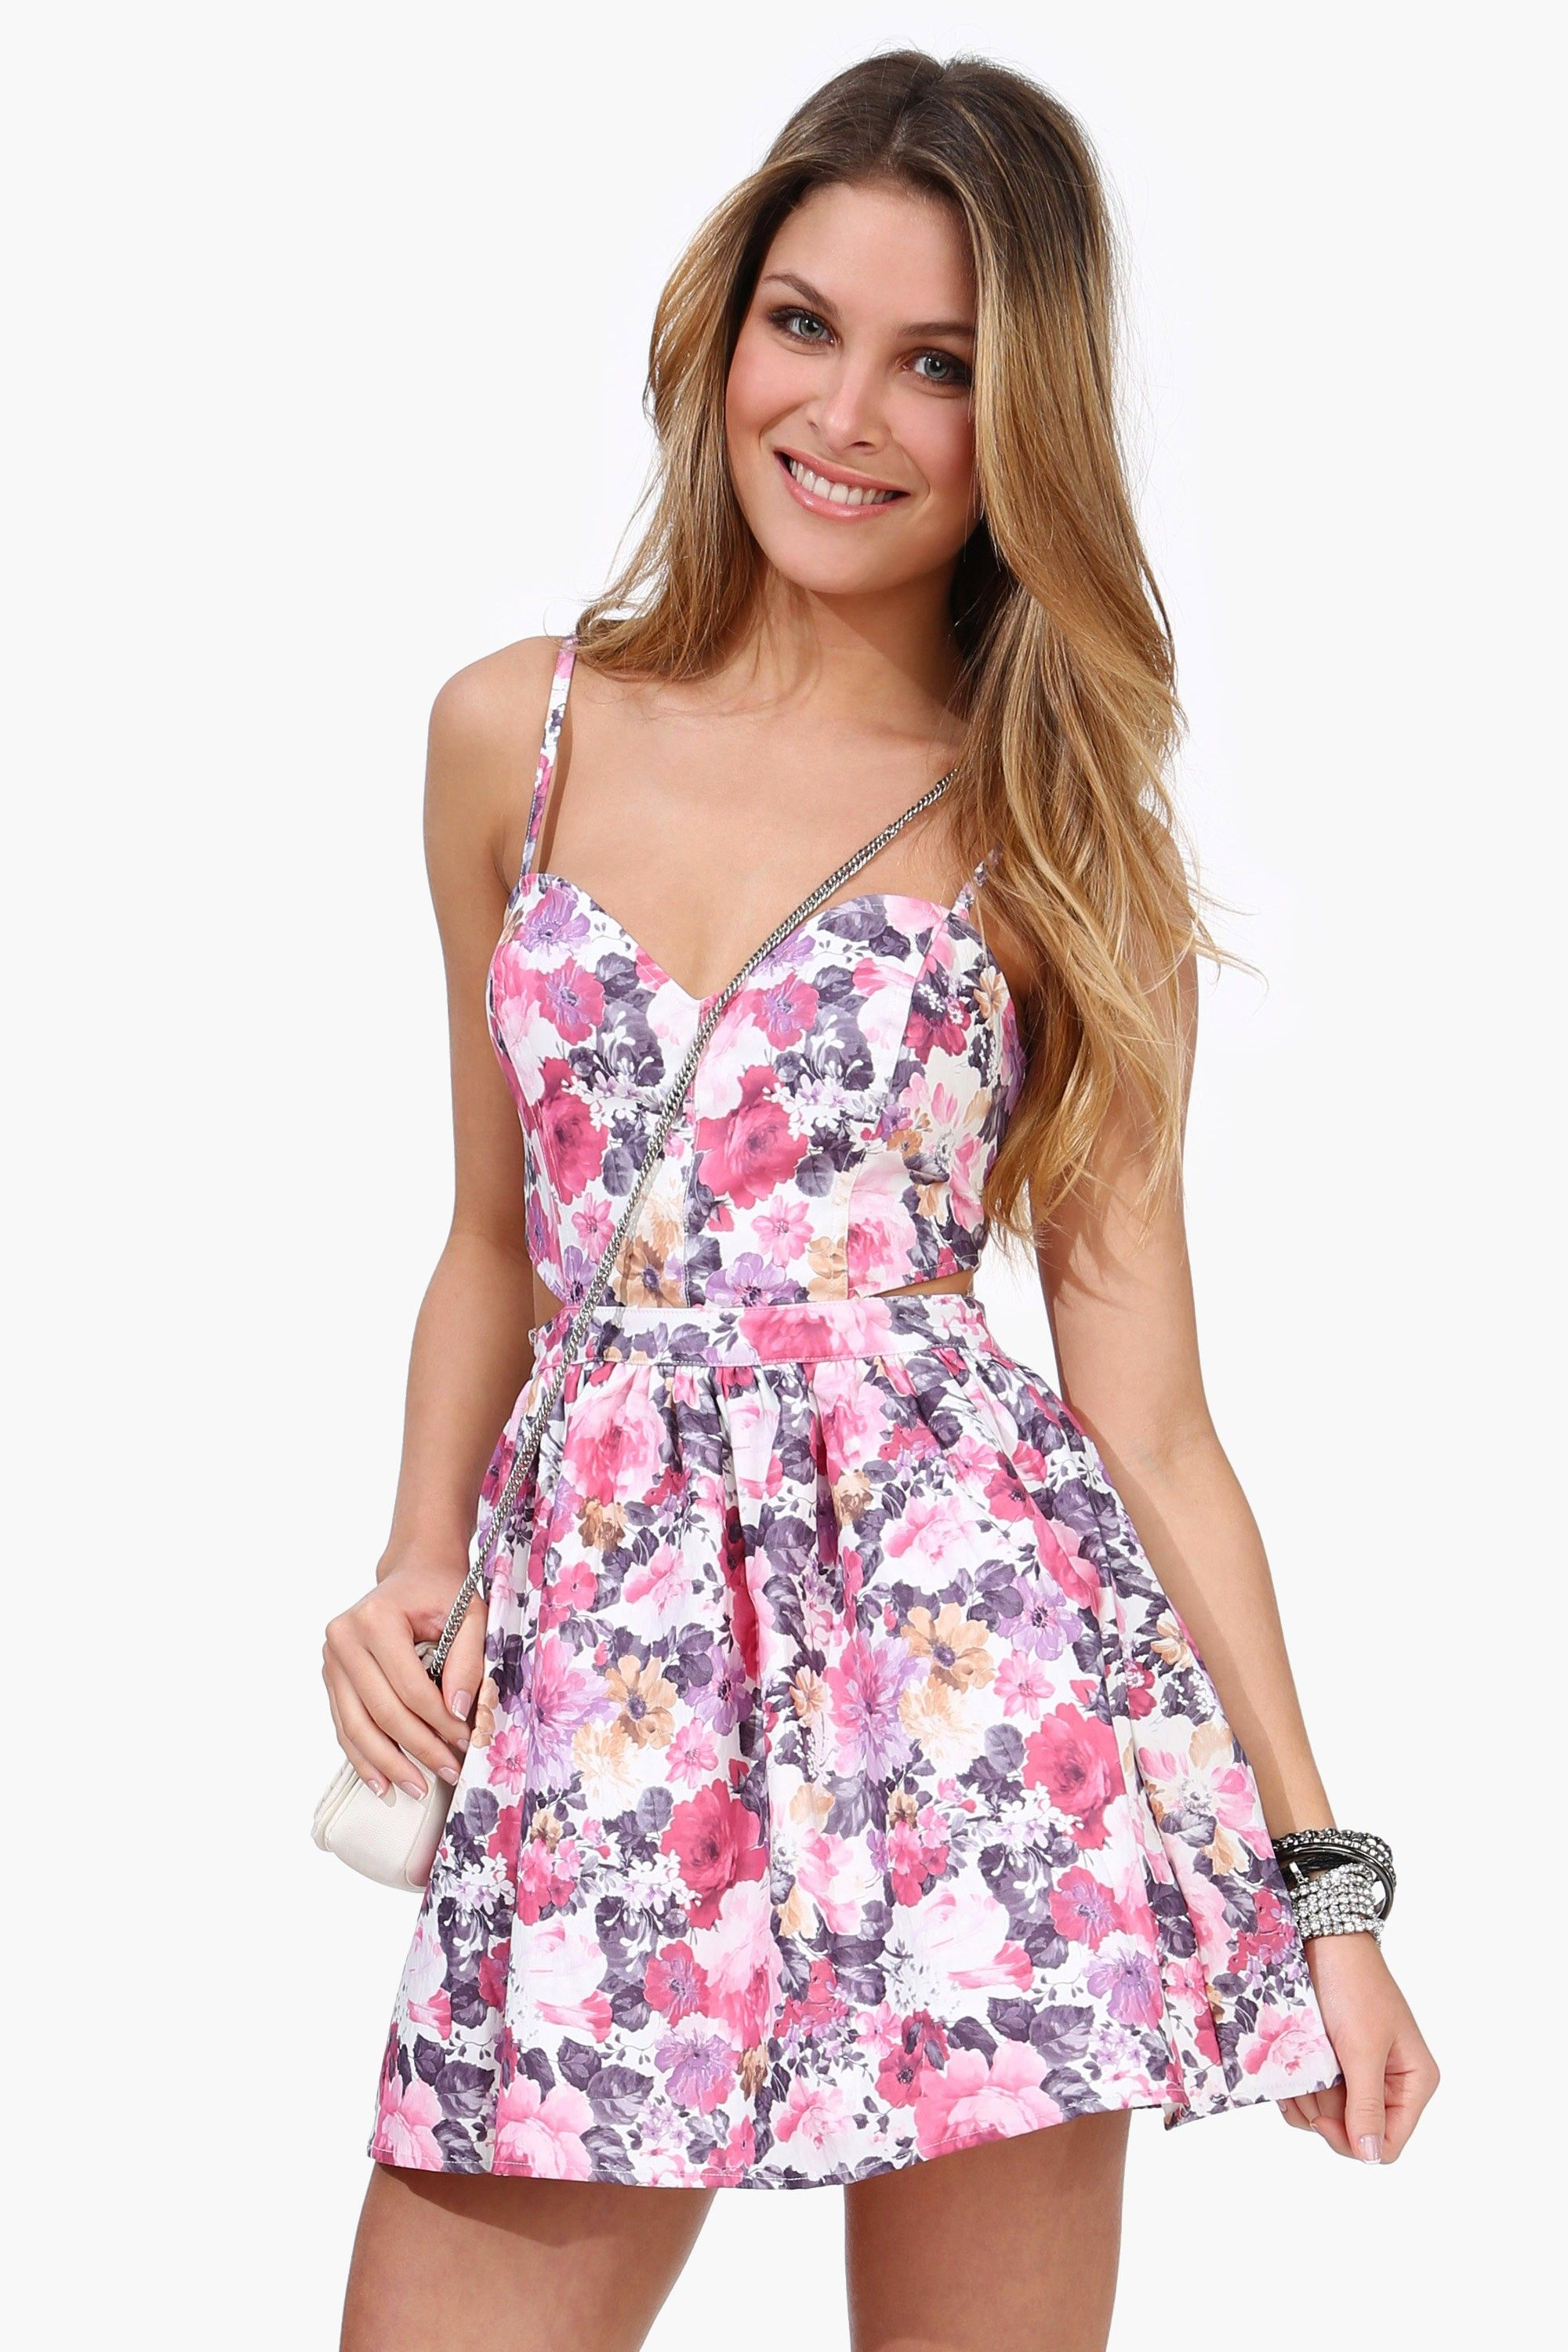 Floral Me Up Dress | 96 | Pinterest | Vestidos fiestas, Vestidos ...